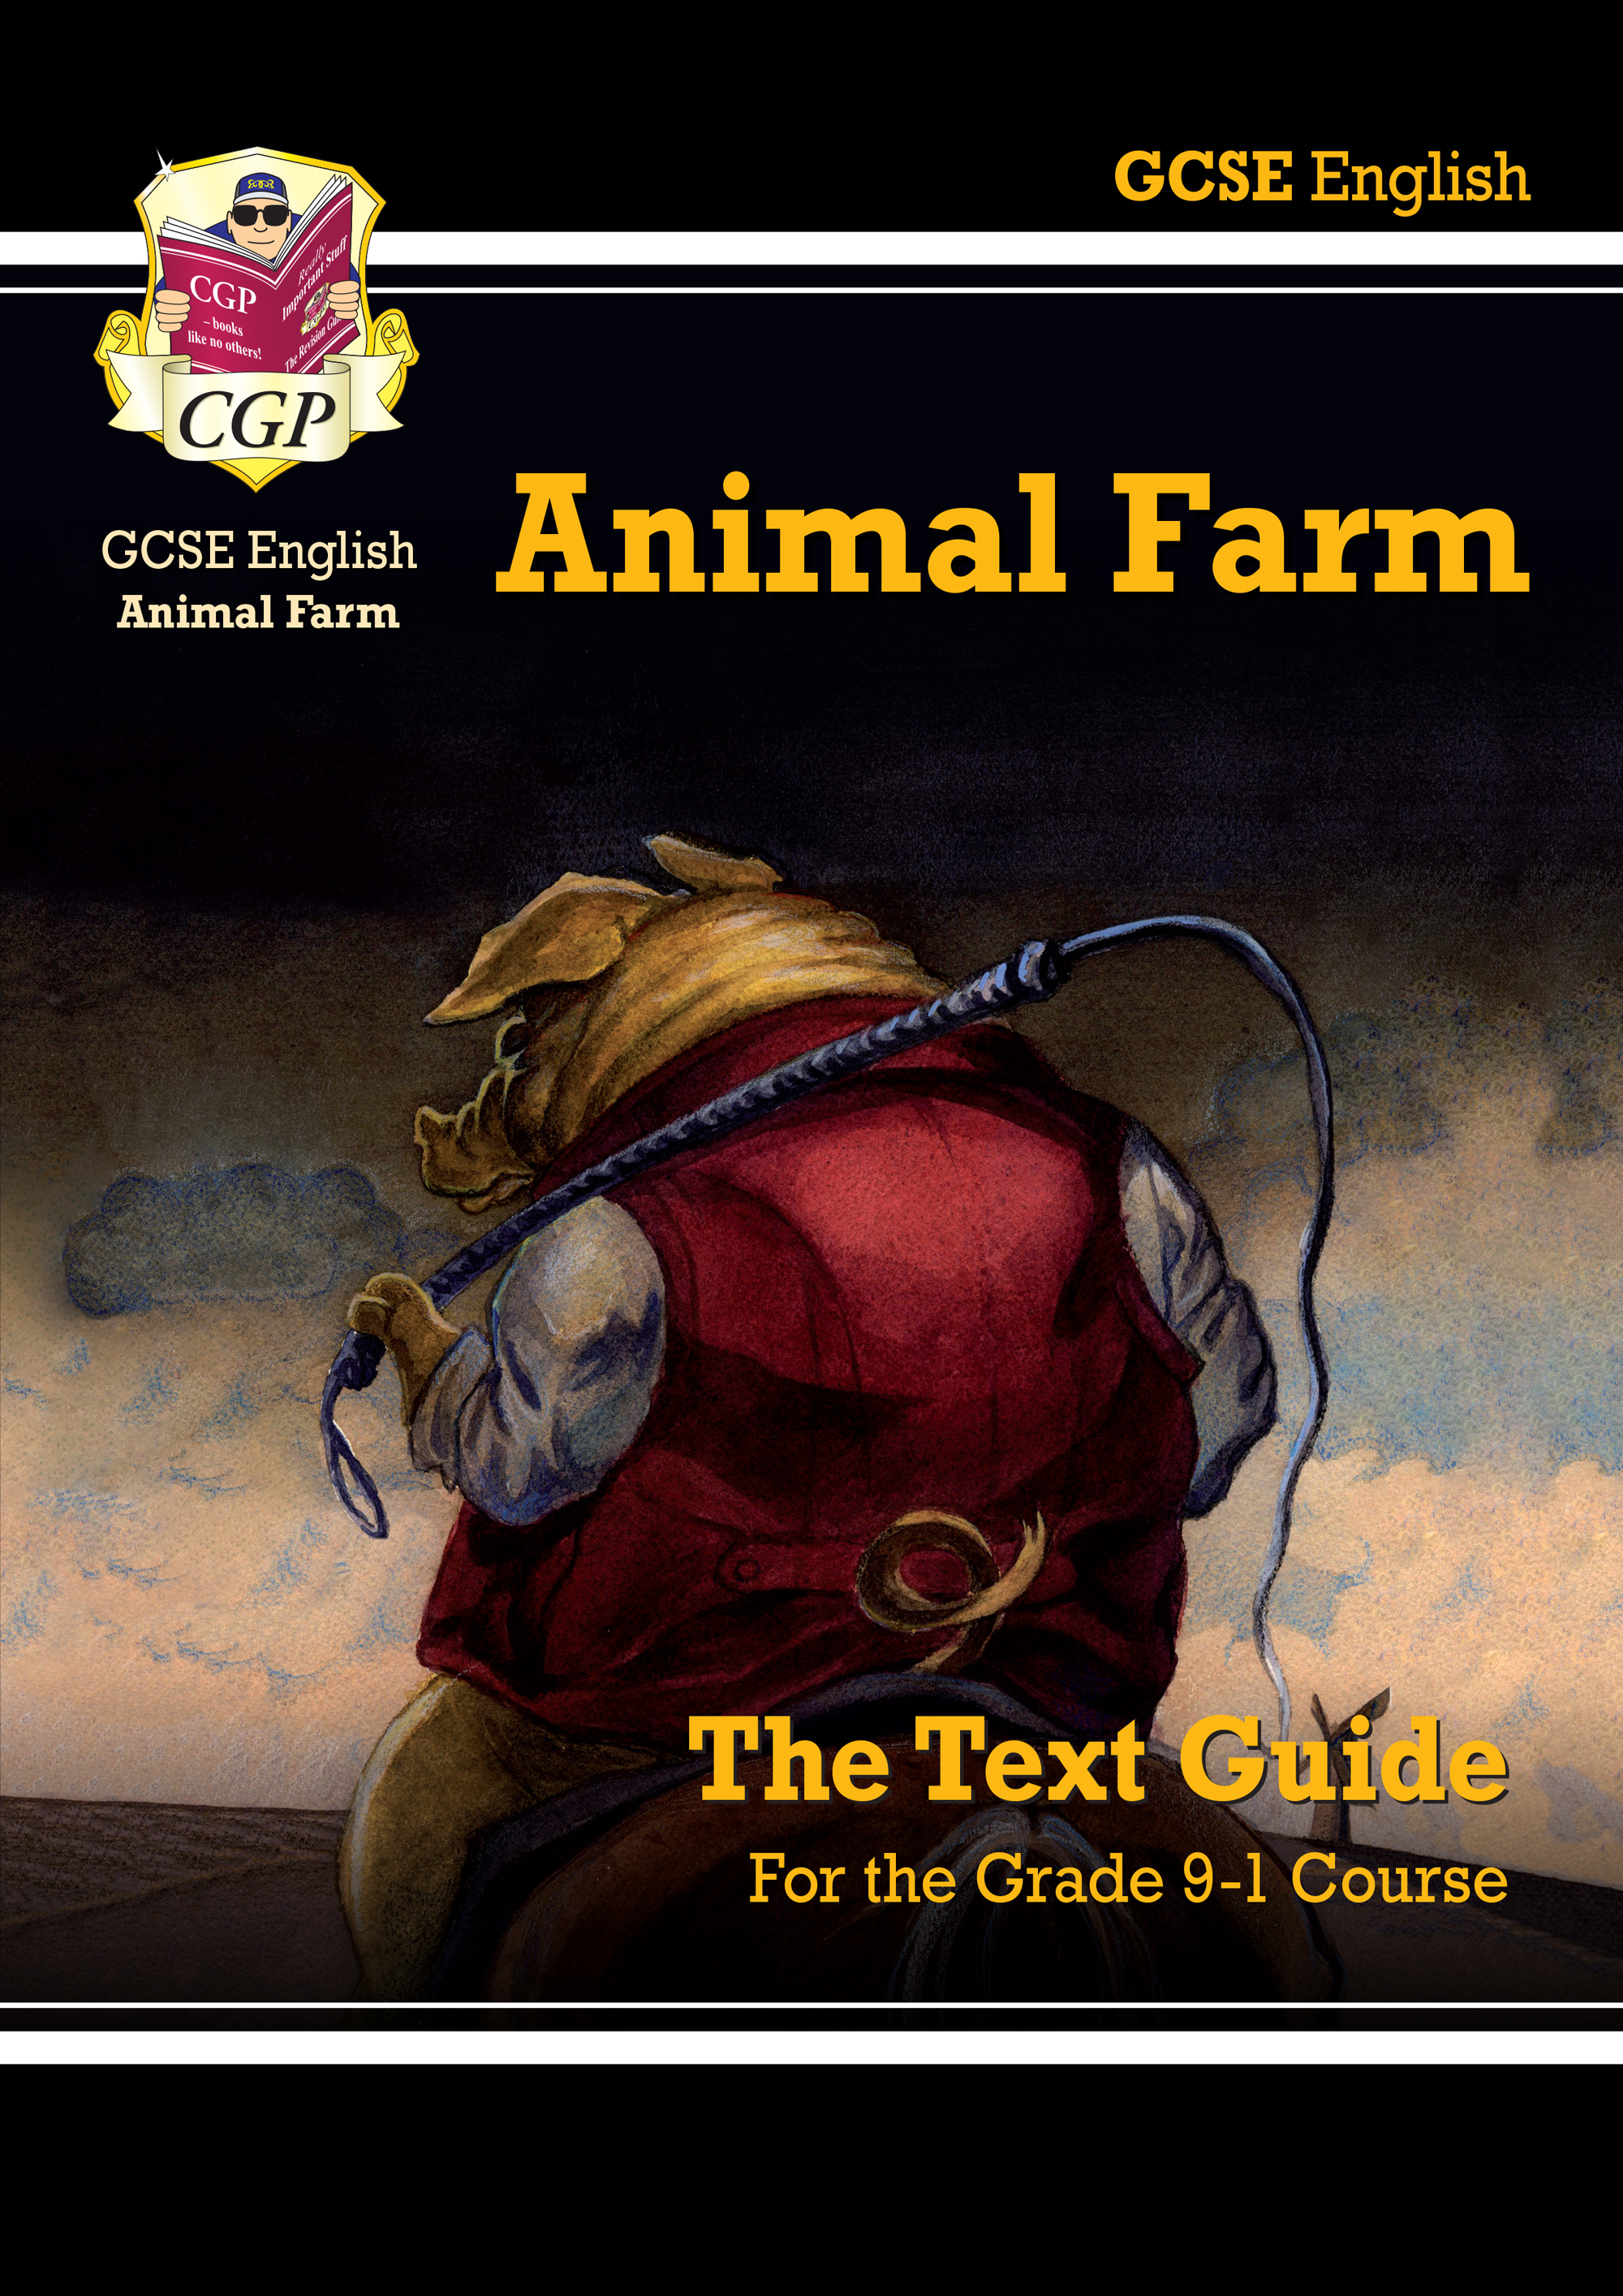 ETA43 - Grade 9-1 GCSE English Text Guide - Animal Farm